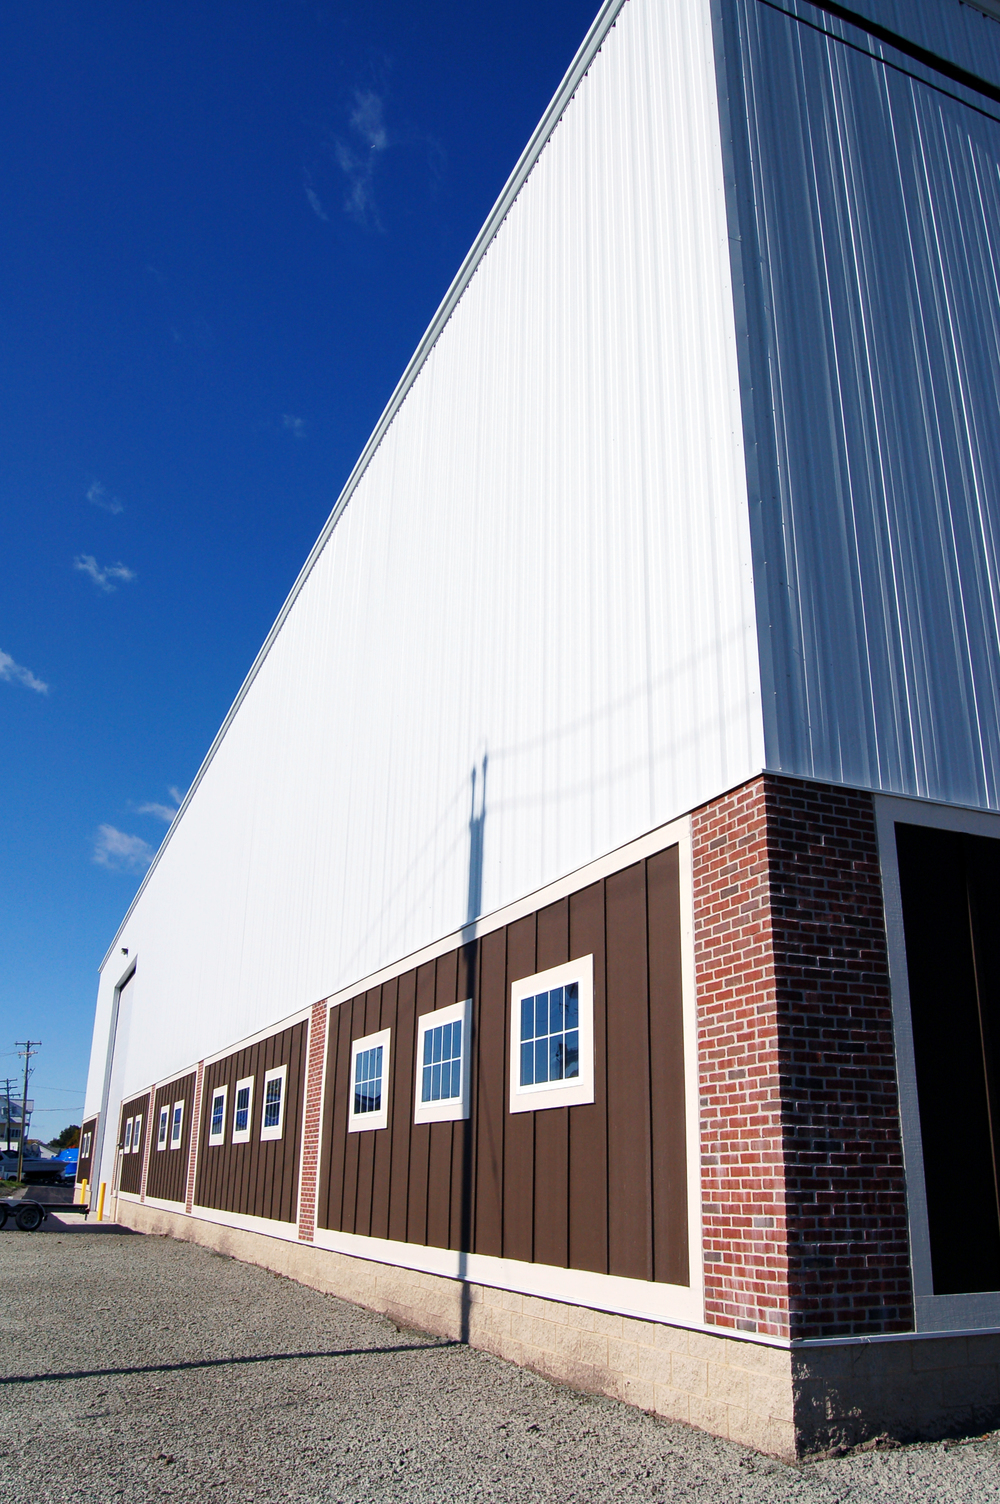 Boat Storage Buildings Cool : Boat storage tailored building systems project presenter